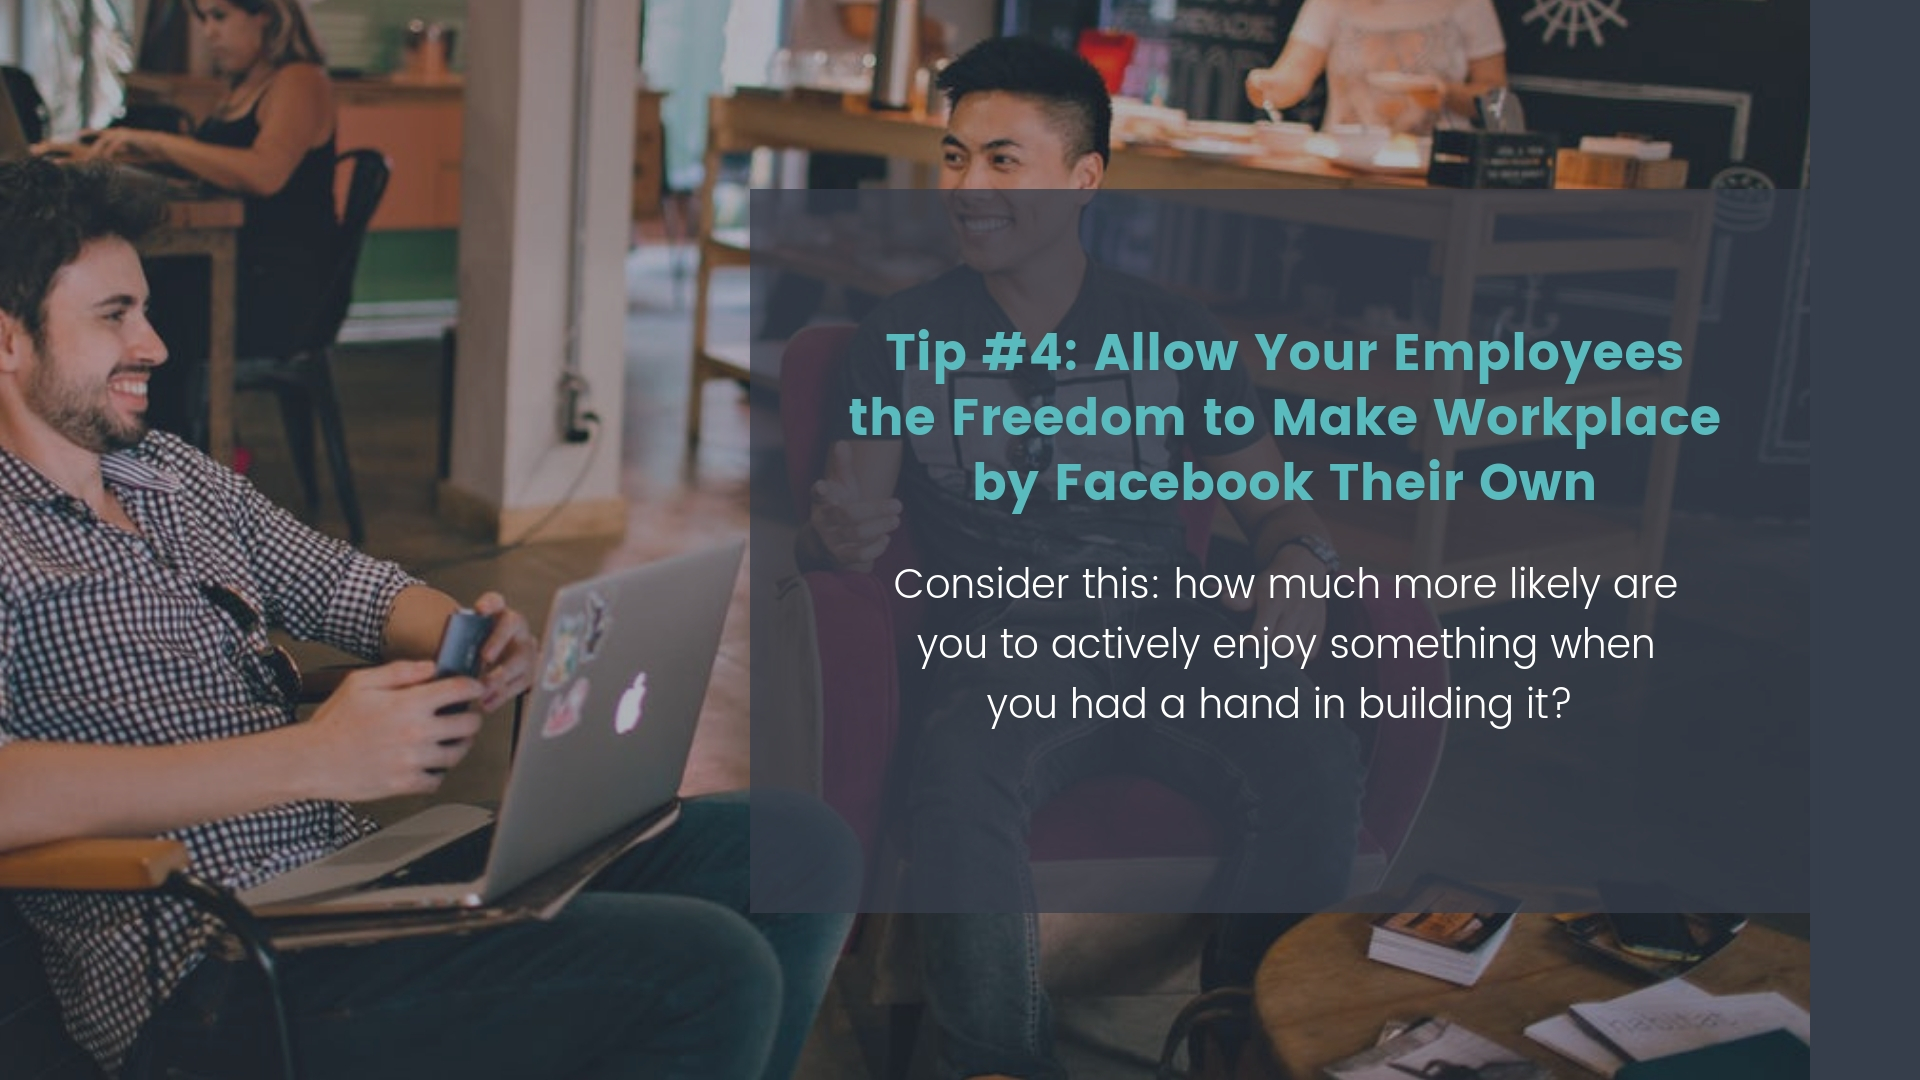 Tip #4: Allow Your Employees the Freedom to Make Workplace by Facebook Their Own